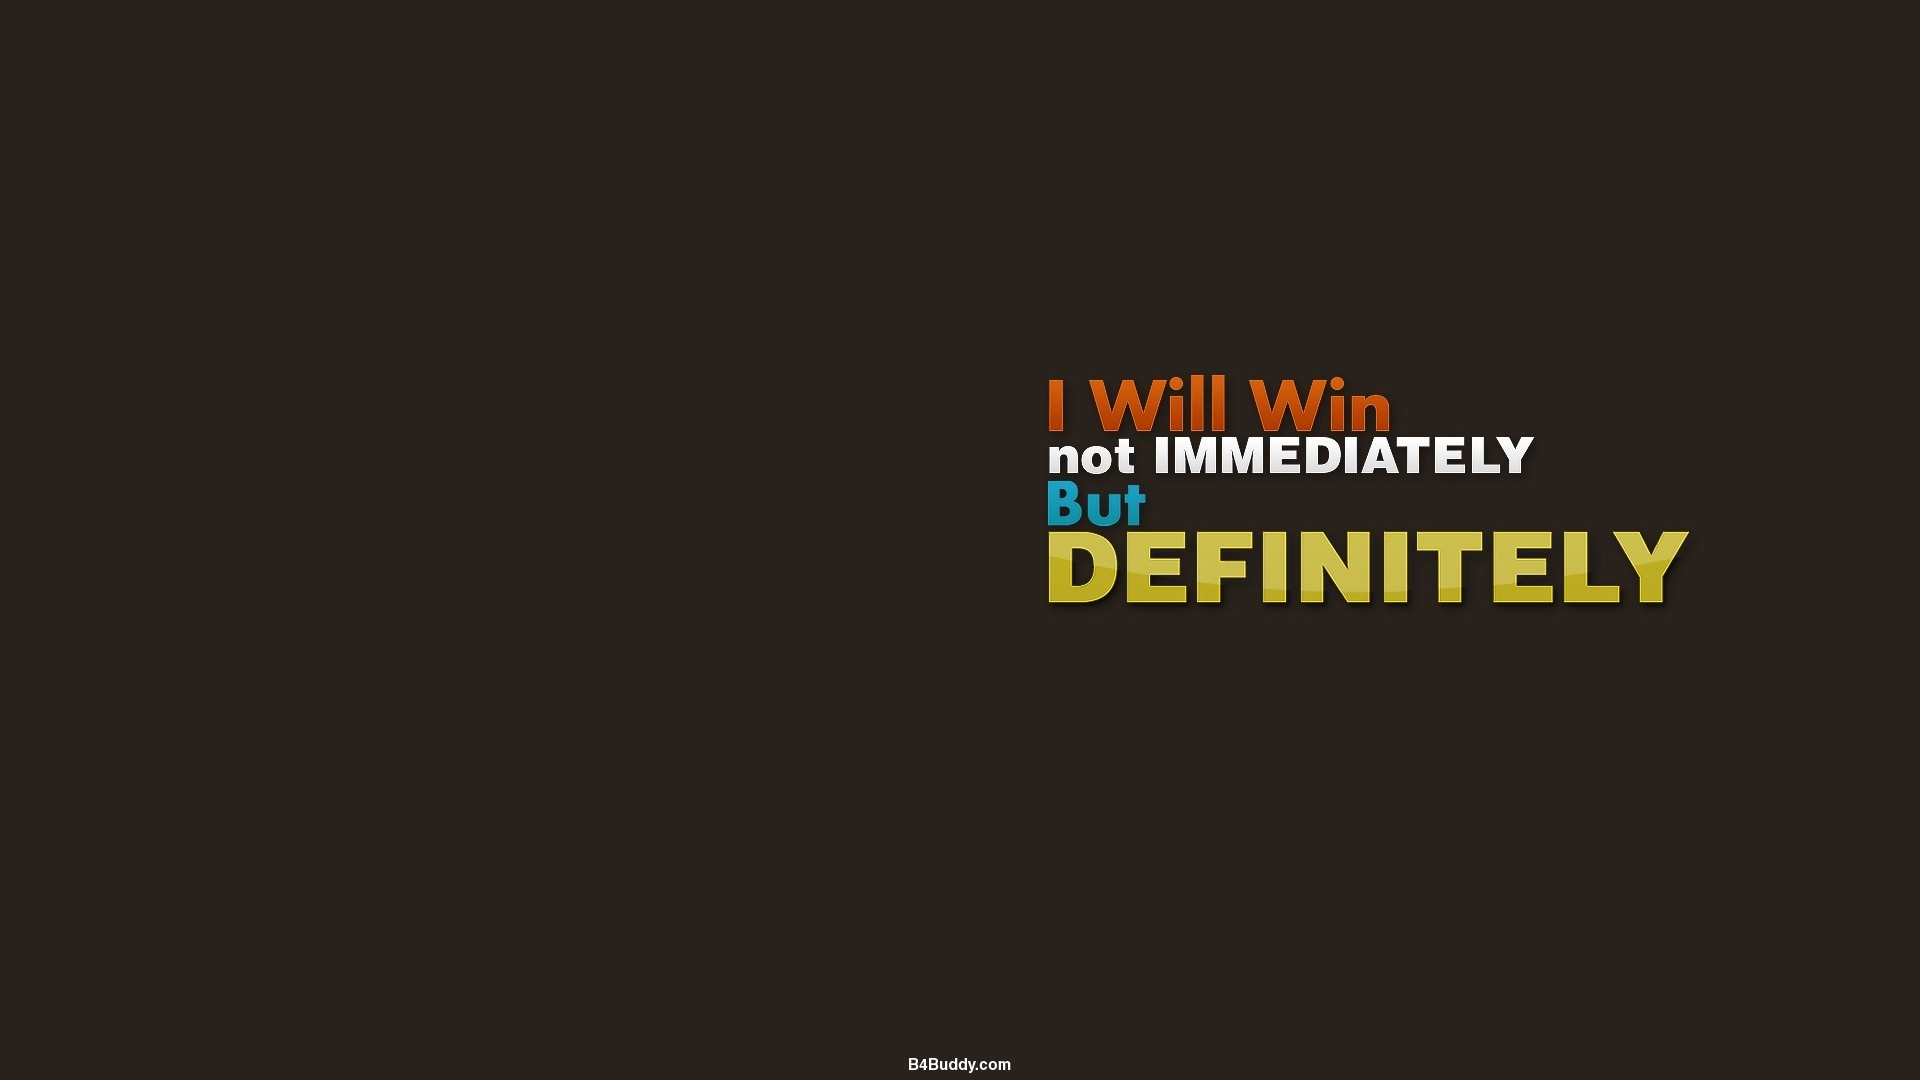 1920x1080 Motivational Quote Wallpaper desktop PC and Mac wallpaper 1920x1080